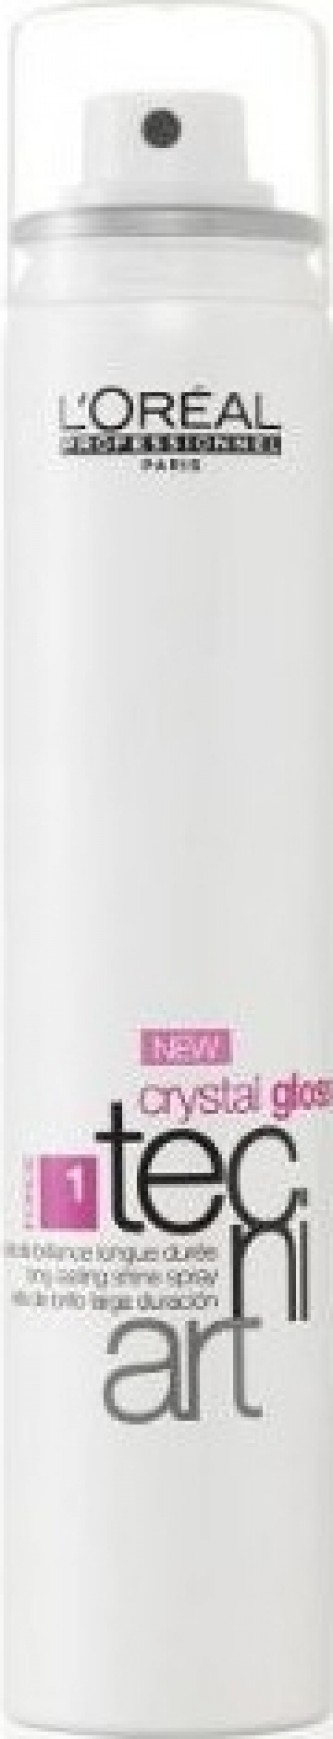 LOREAL Tecni.Art Crystal Gloss 100ml